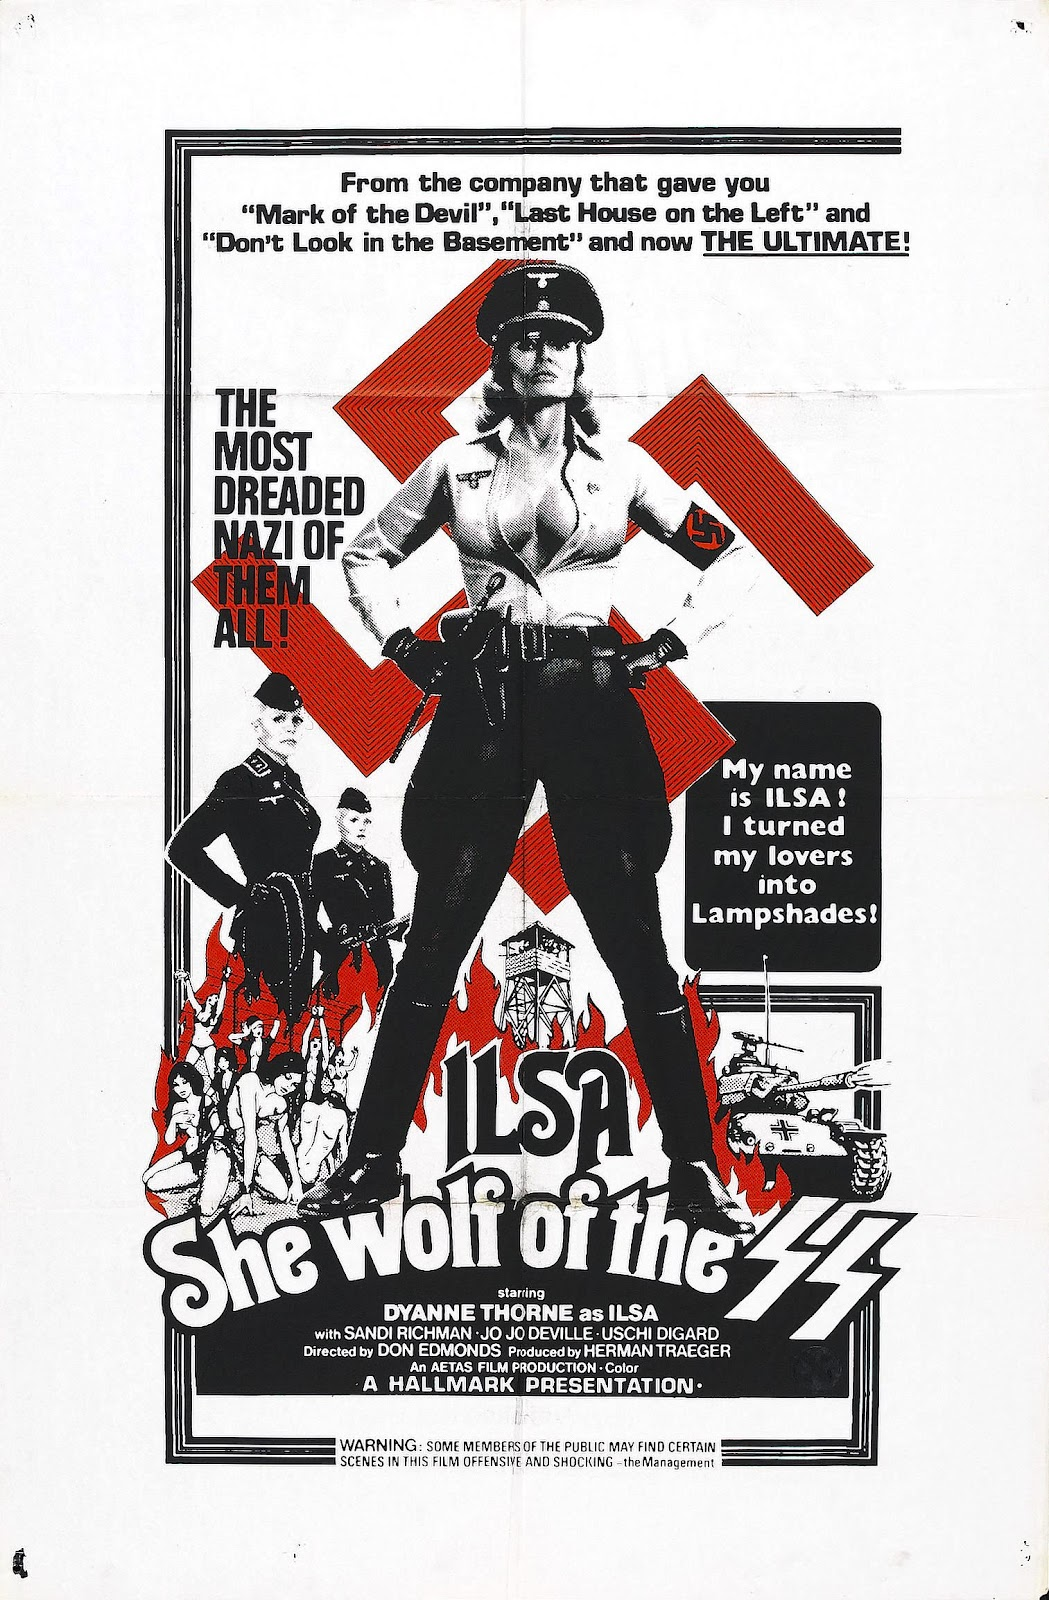 She wolves of the ss